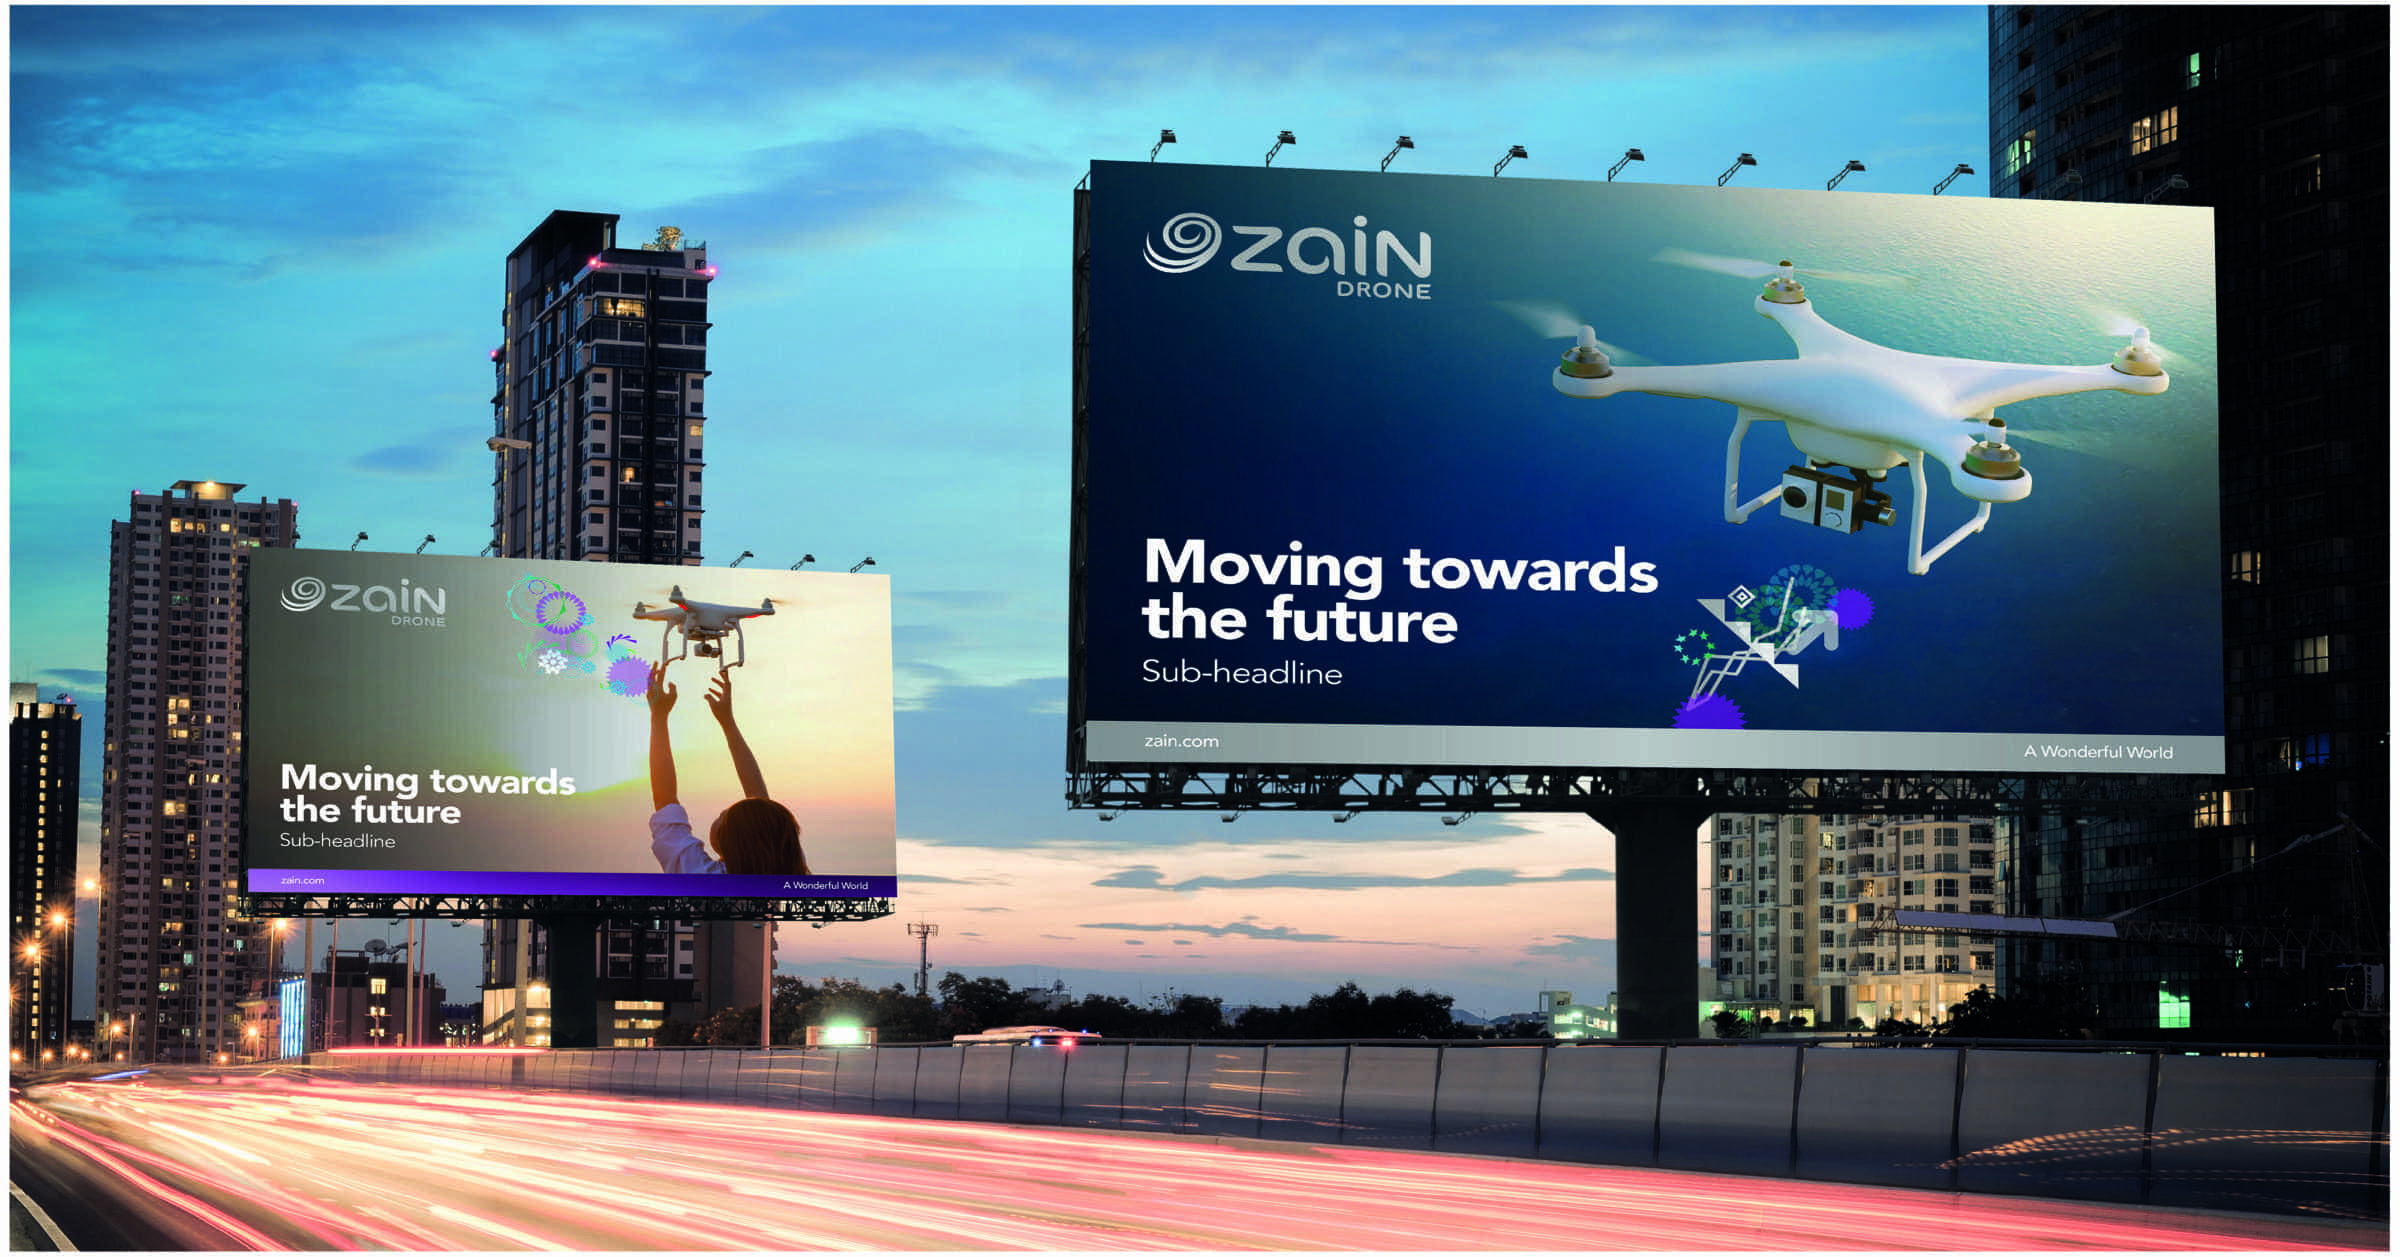 Zain Drones billboards